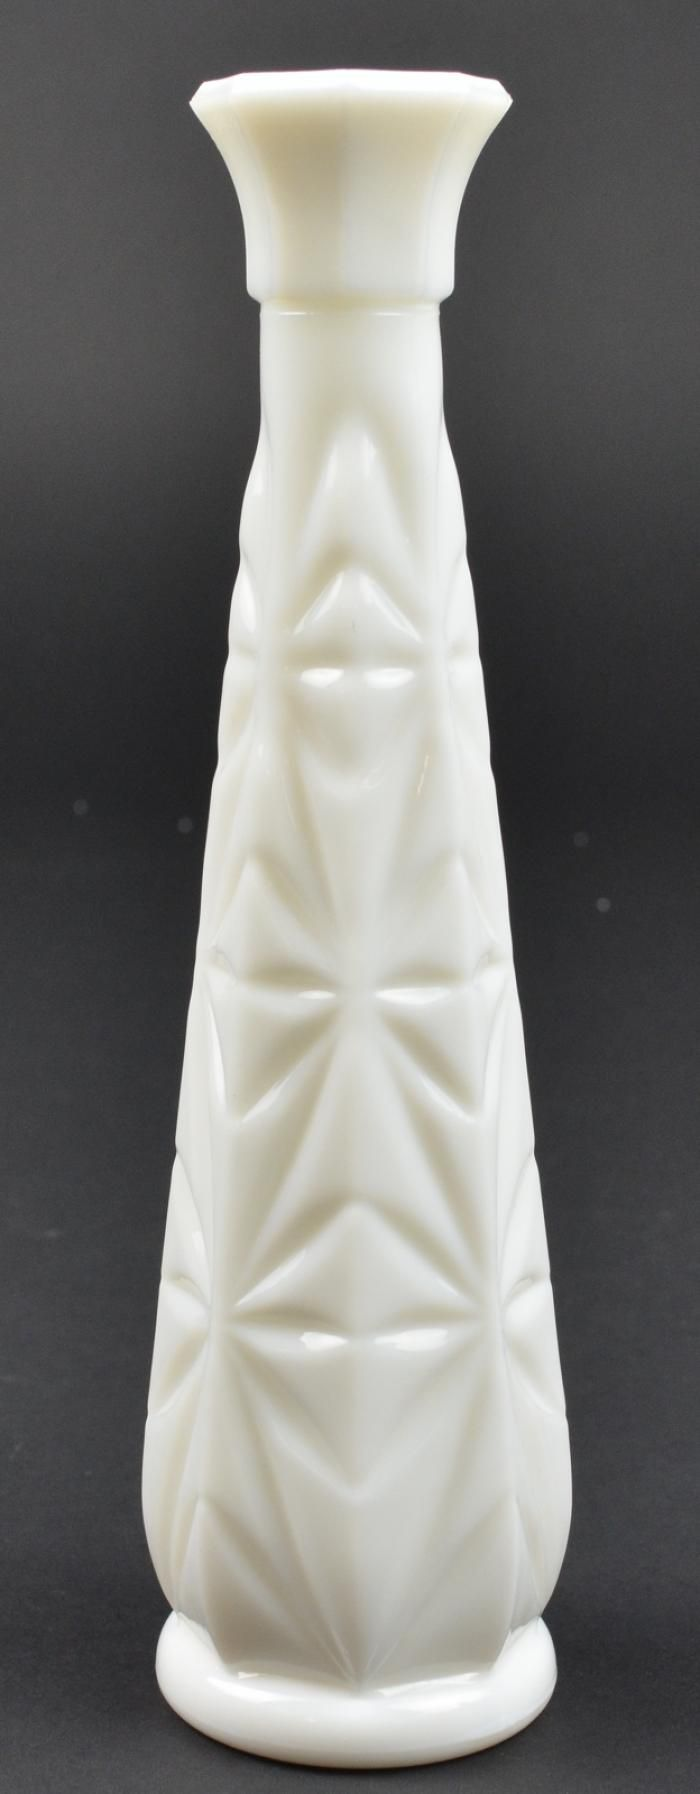 Milk glass vases value hoosier glass starburst milk glass milk glass vases value hoosier glass starburst milk glass pattern bud vase reviewsmspy